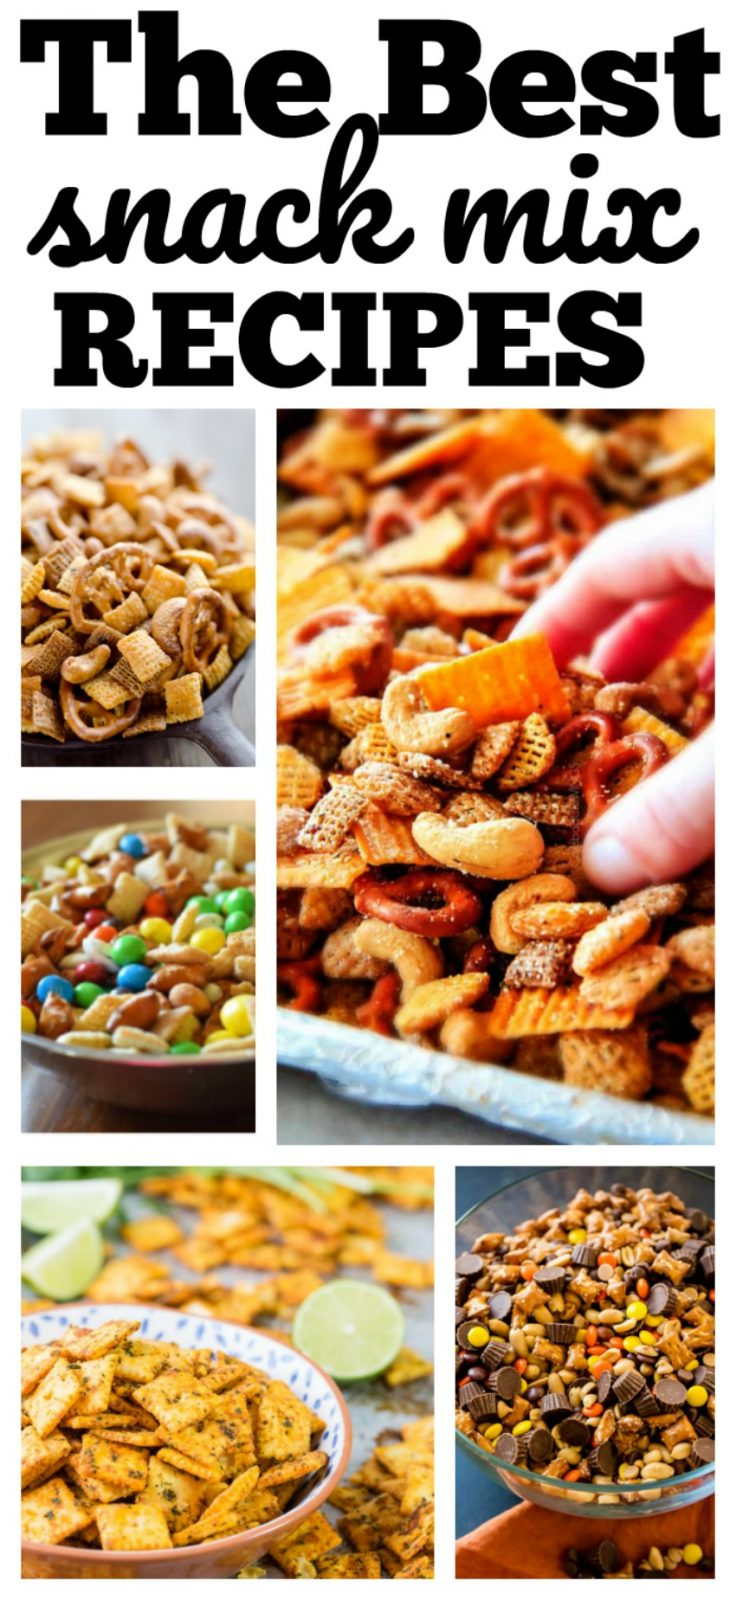 The Best Snack Mix Recipes